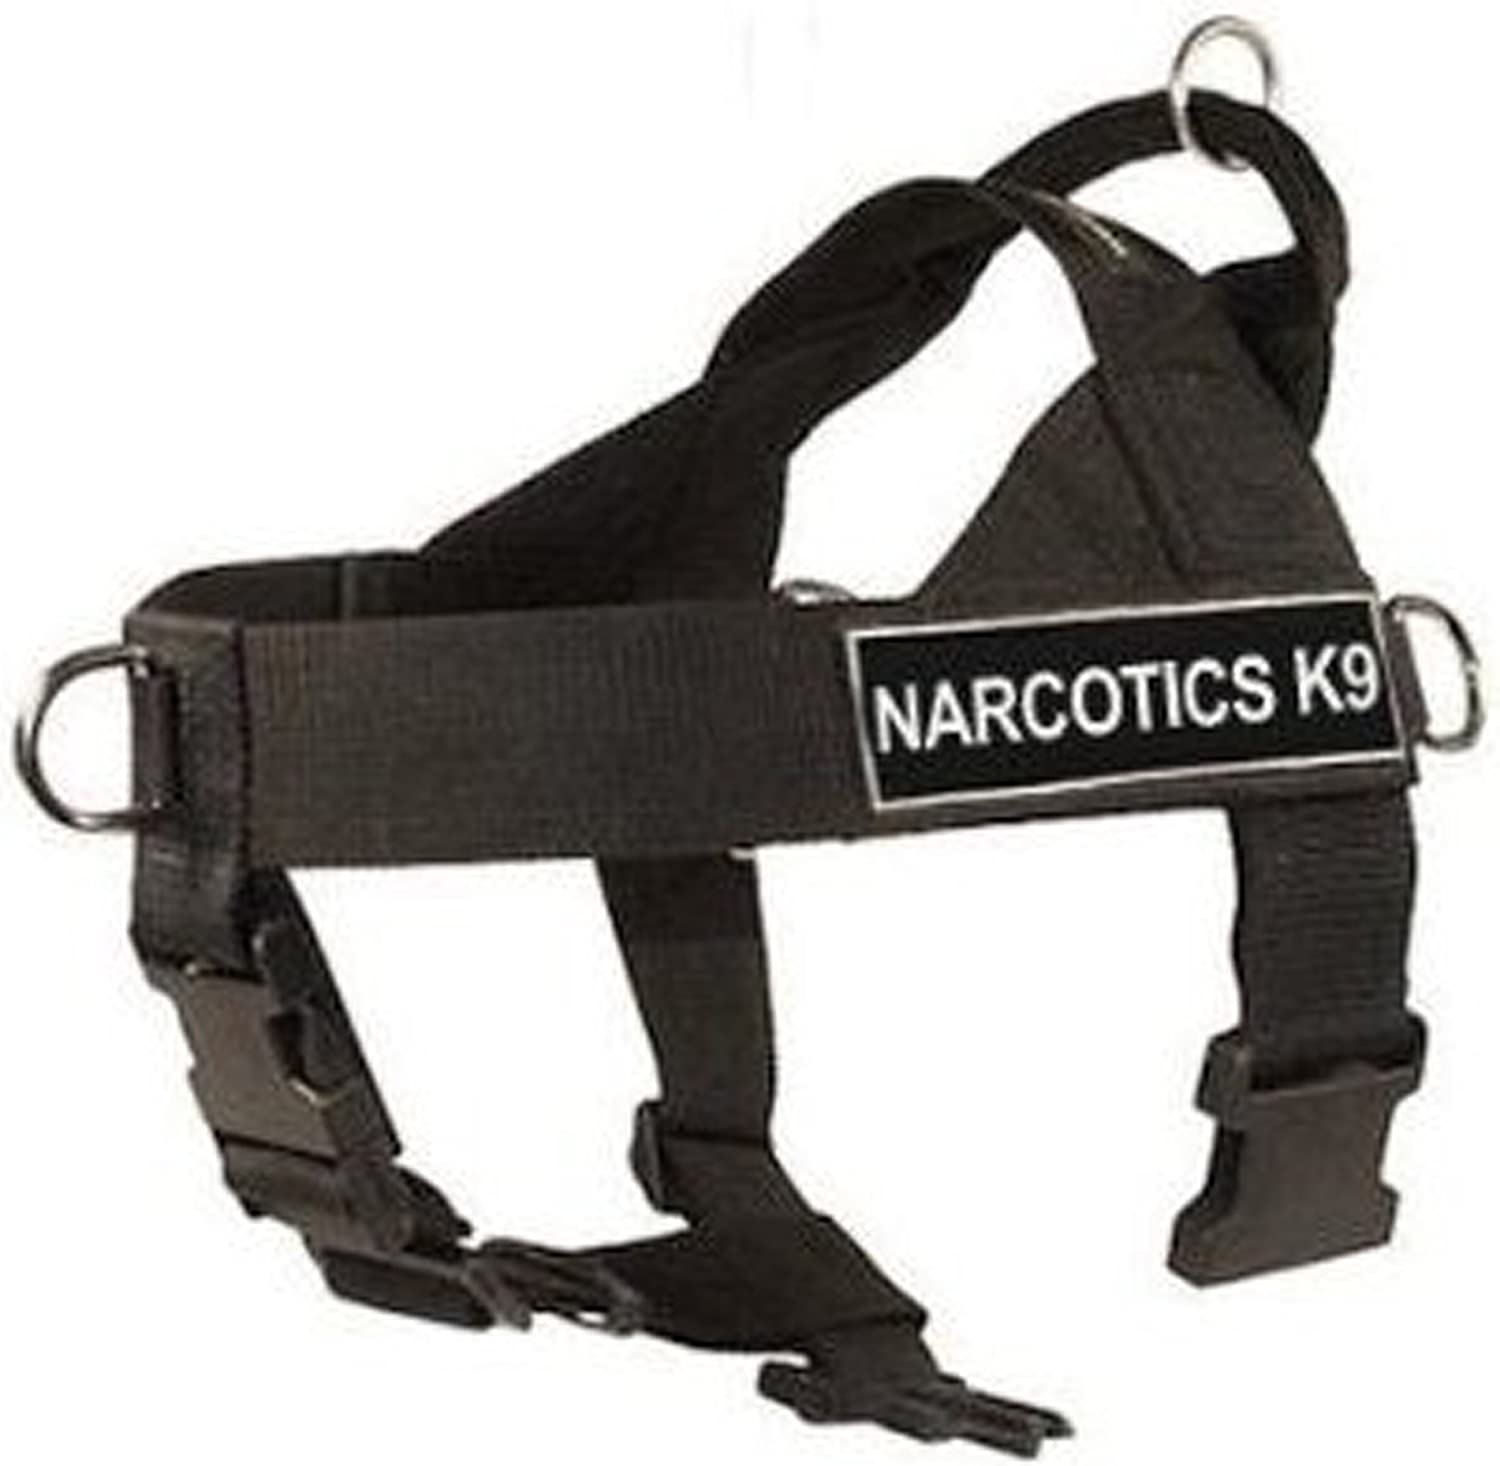 DT Universal No Pull Dog Harness, Narcotics K9, Black, XLarge  Fits Girth Size  91cm to 119cm